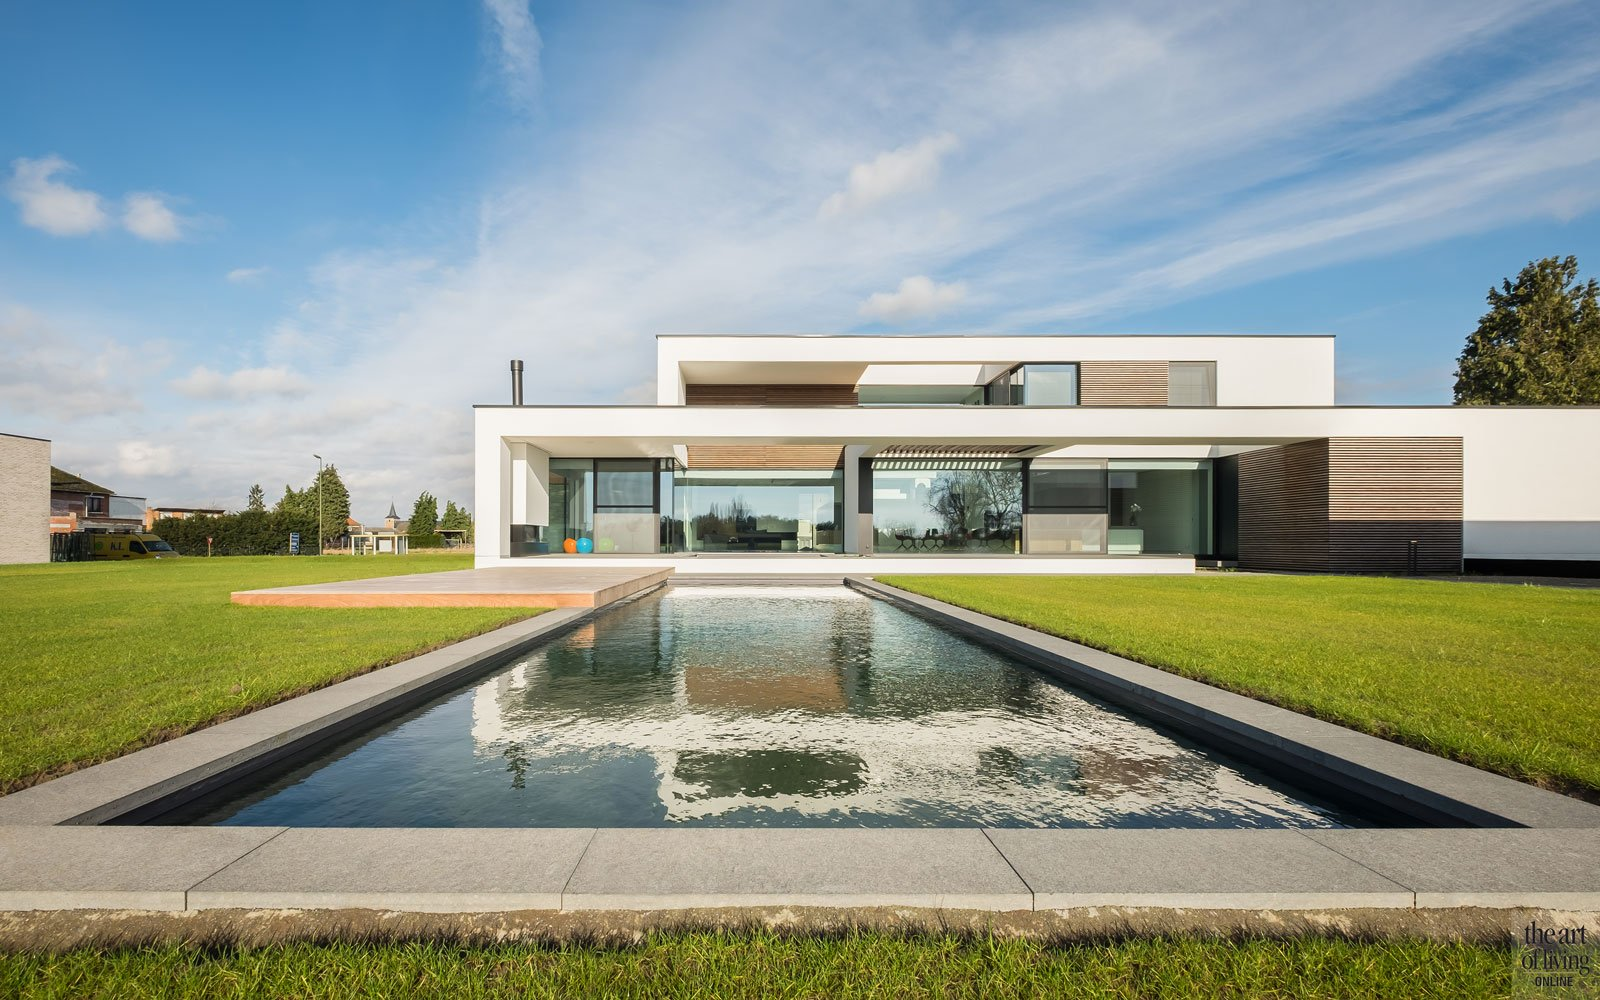 Transparante villa, Block office architecten, the art of living, zwembad, buitenzwembad, zwembaden, swimming pool, pool, exclusief